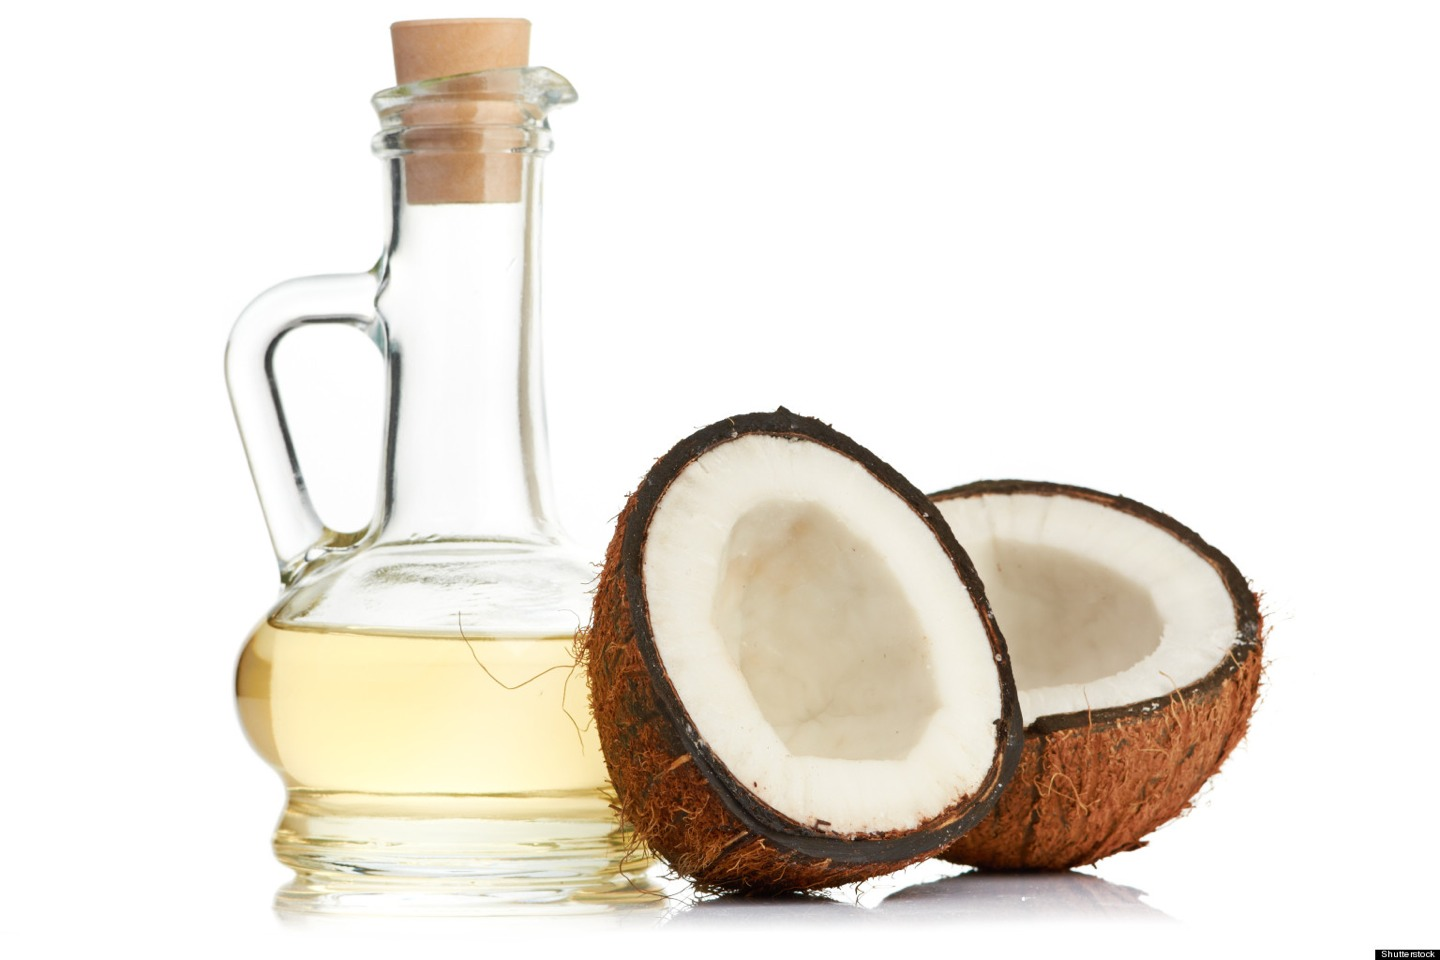 Add half a teaspoon of coconut oil (or one teaspoon depending on how much sugar you used)